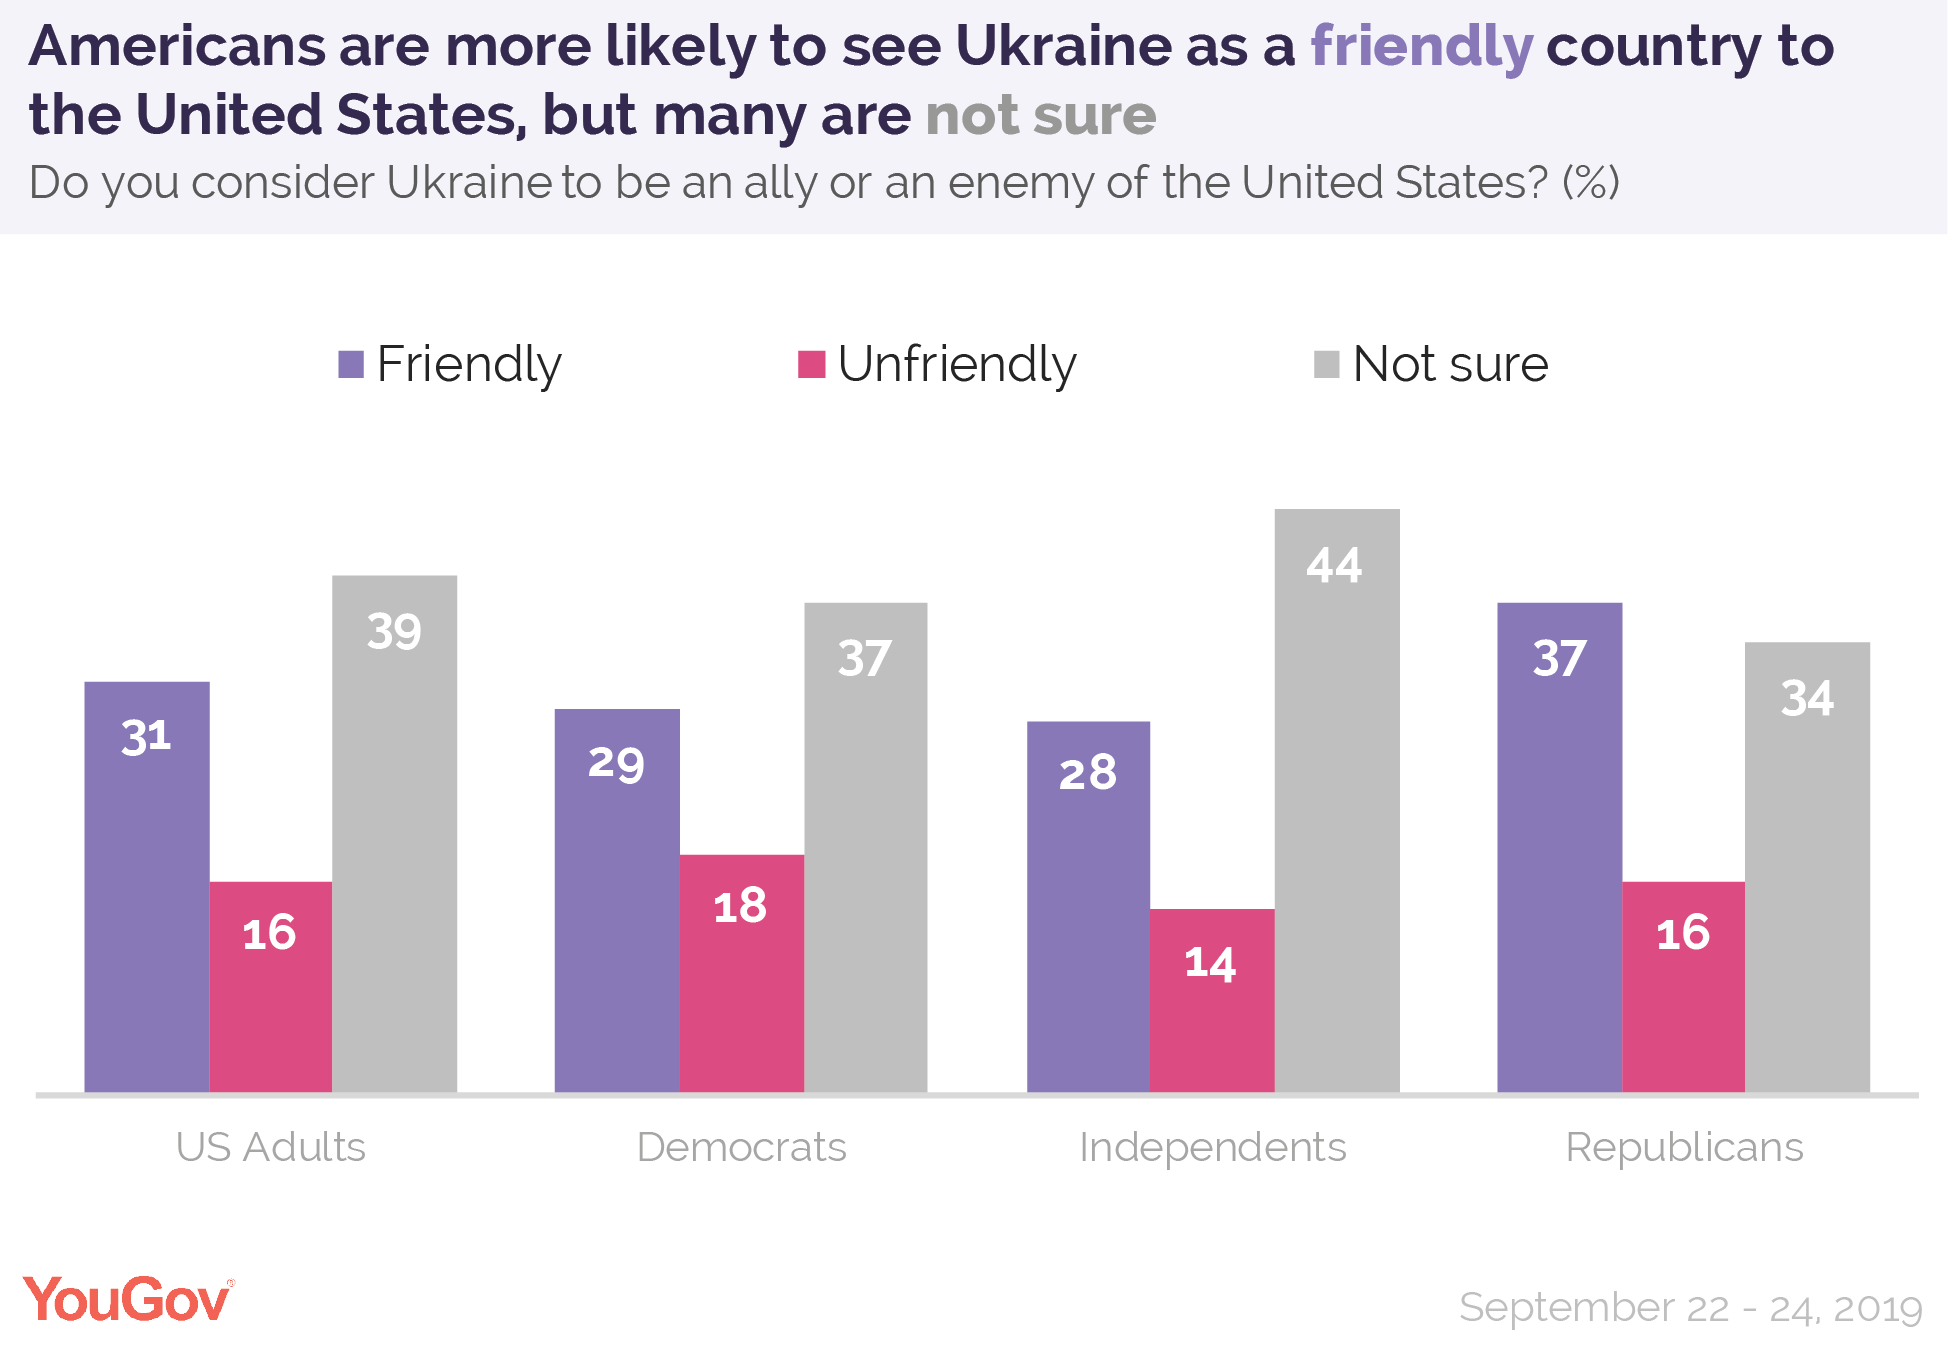 Americans are more likely to see Ukraine as a friendly country to the United States, but many are not sure